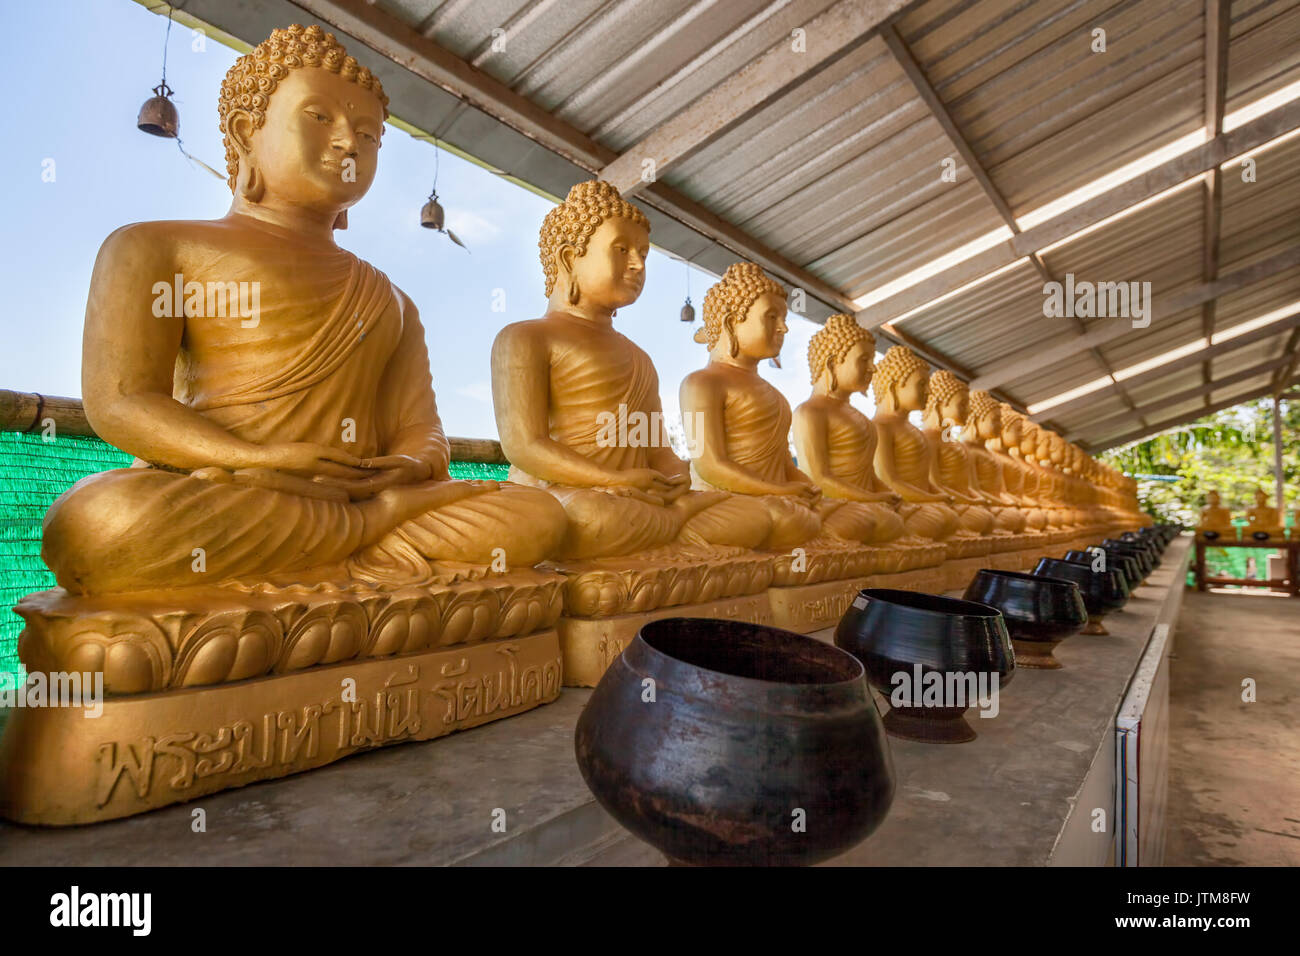 Buddha statues with bronze bowls for donations at the Phuket Big Buddha Park, Chalong, Thailand - Stock Image